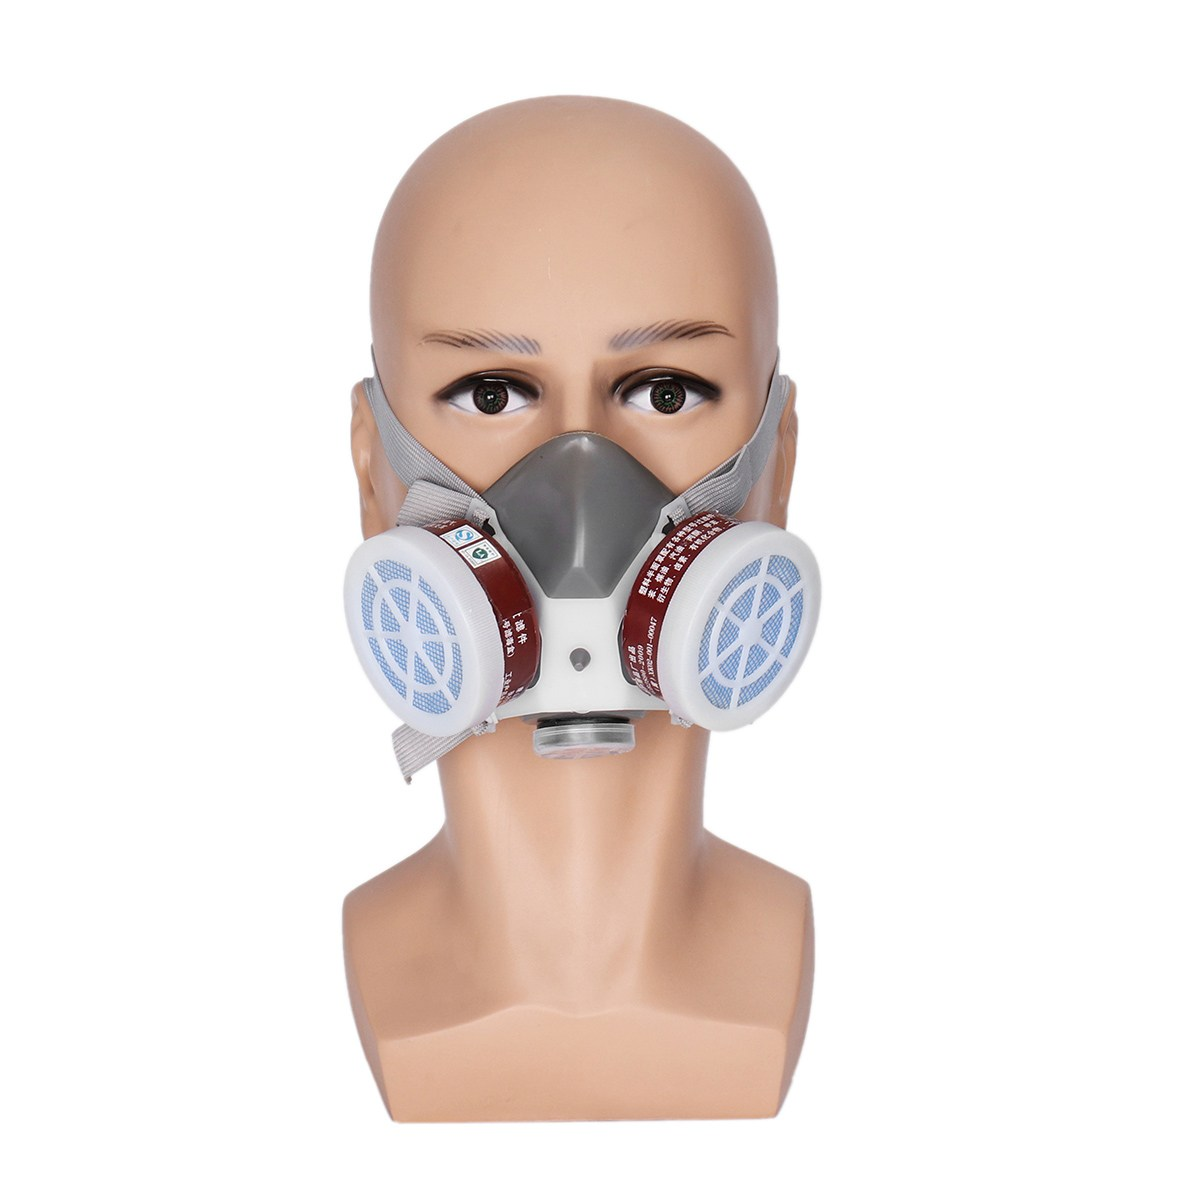 NEW Respirator Gas Mask Safety Chemical Anti-Dust Filter Military Workplace Safety Protection Anti Dust new industrial dust gas mask respirator chemical gas filter half face mask for painting organic vapours work safety